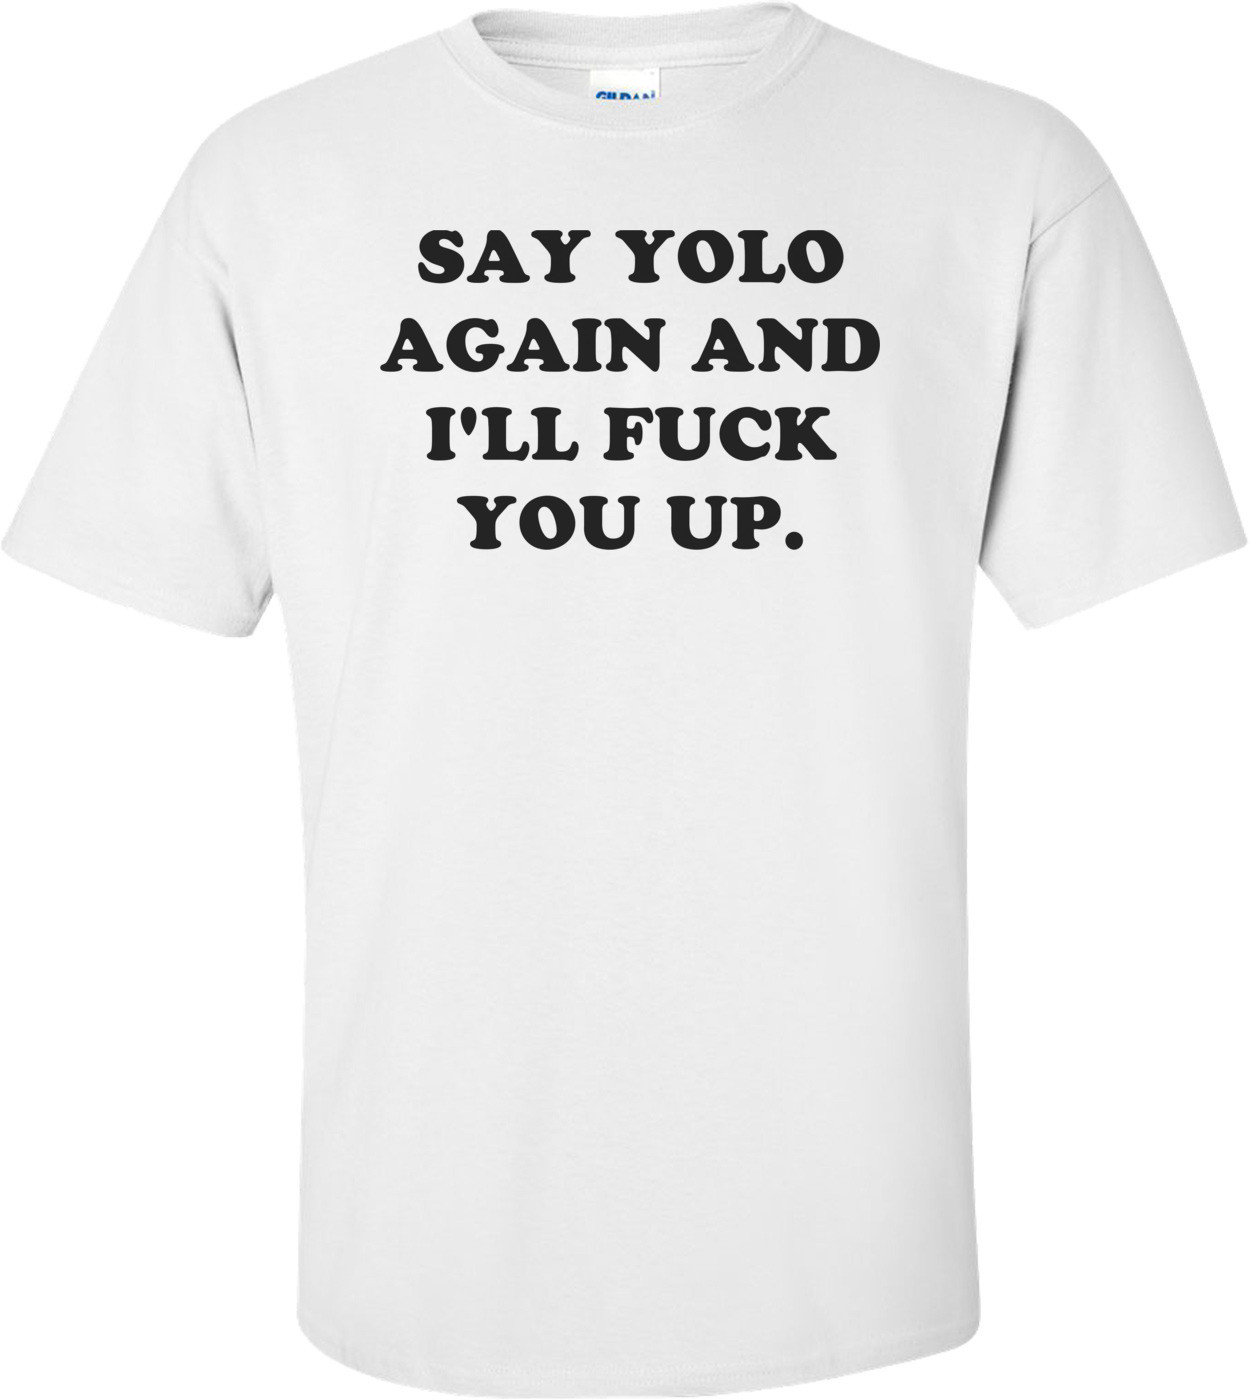 SAY YOLO AGAIN AND I'LL FUCK YOU UP. Shirt